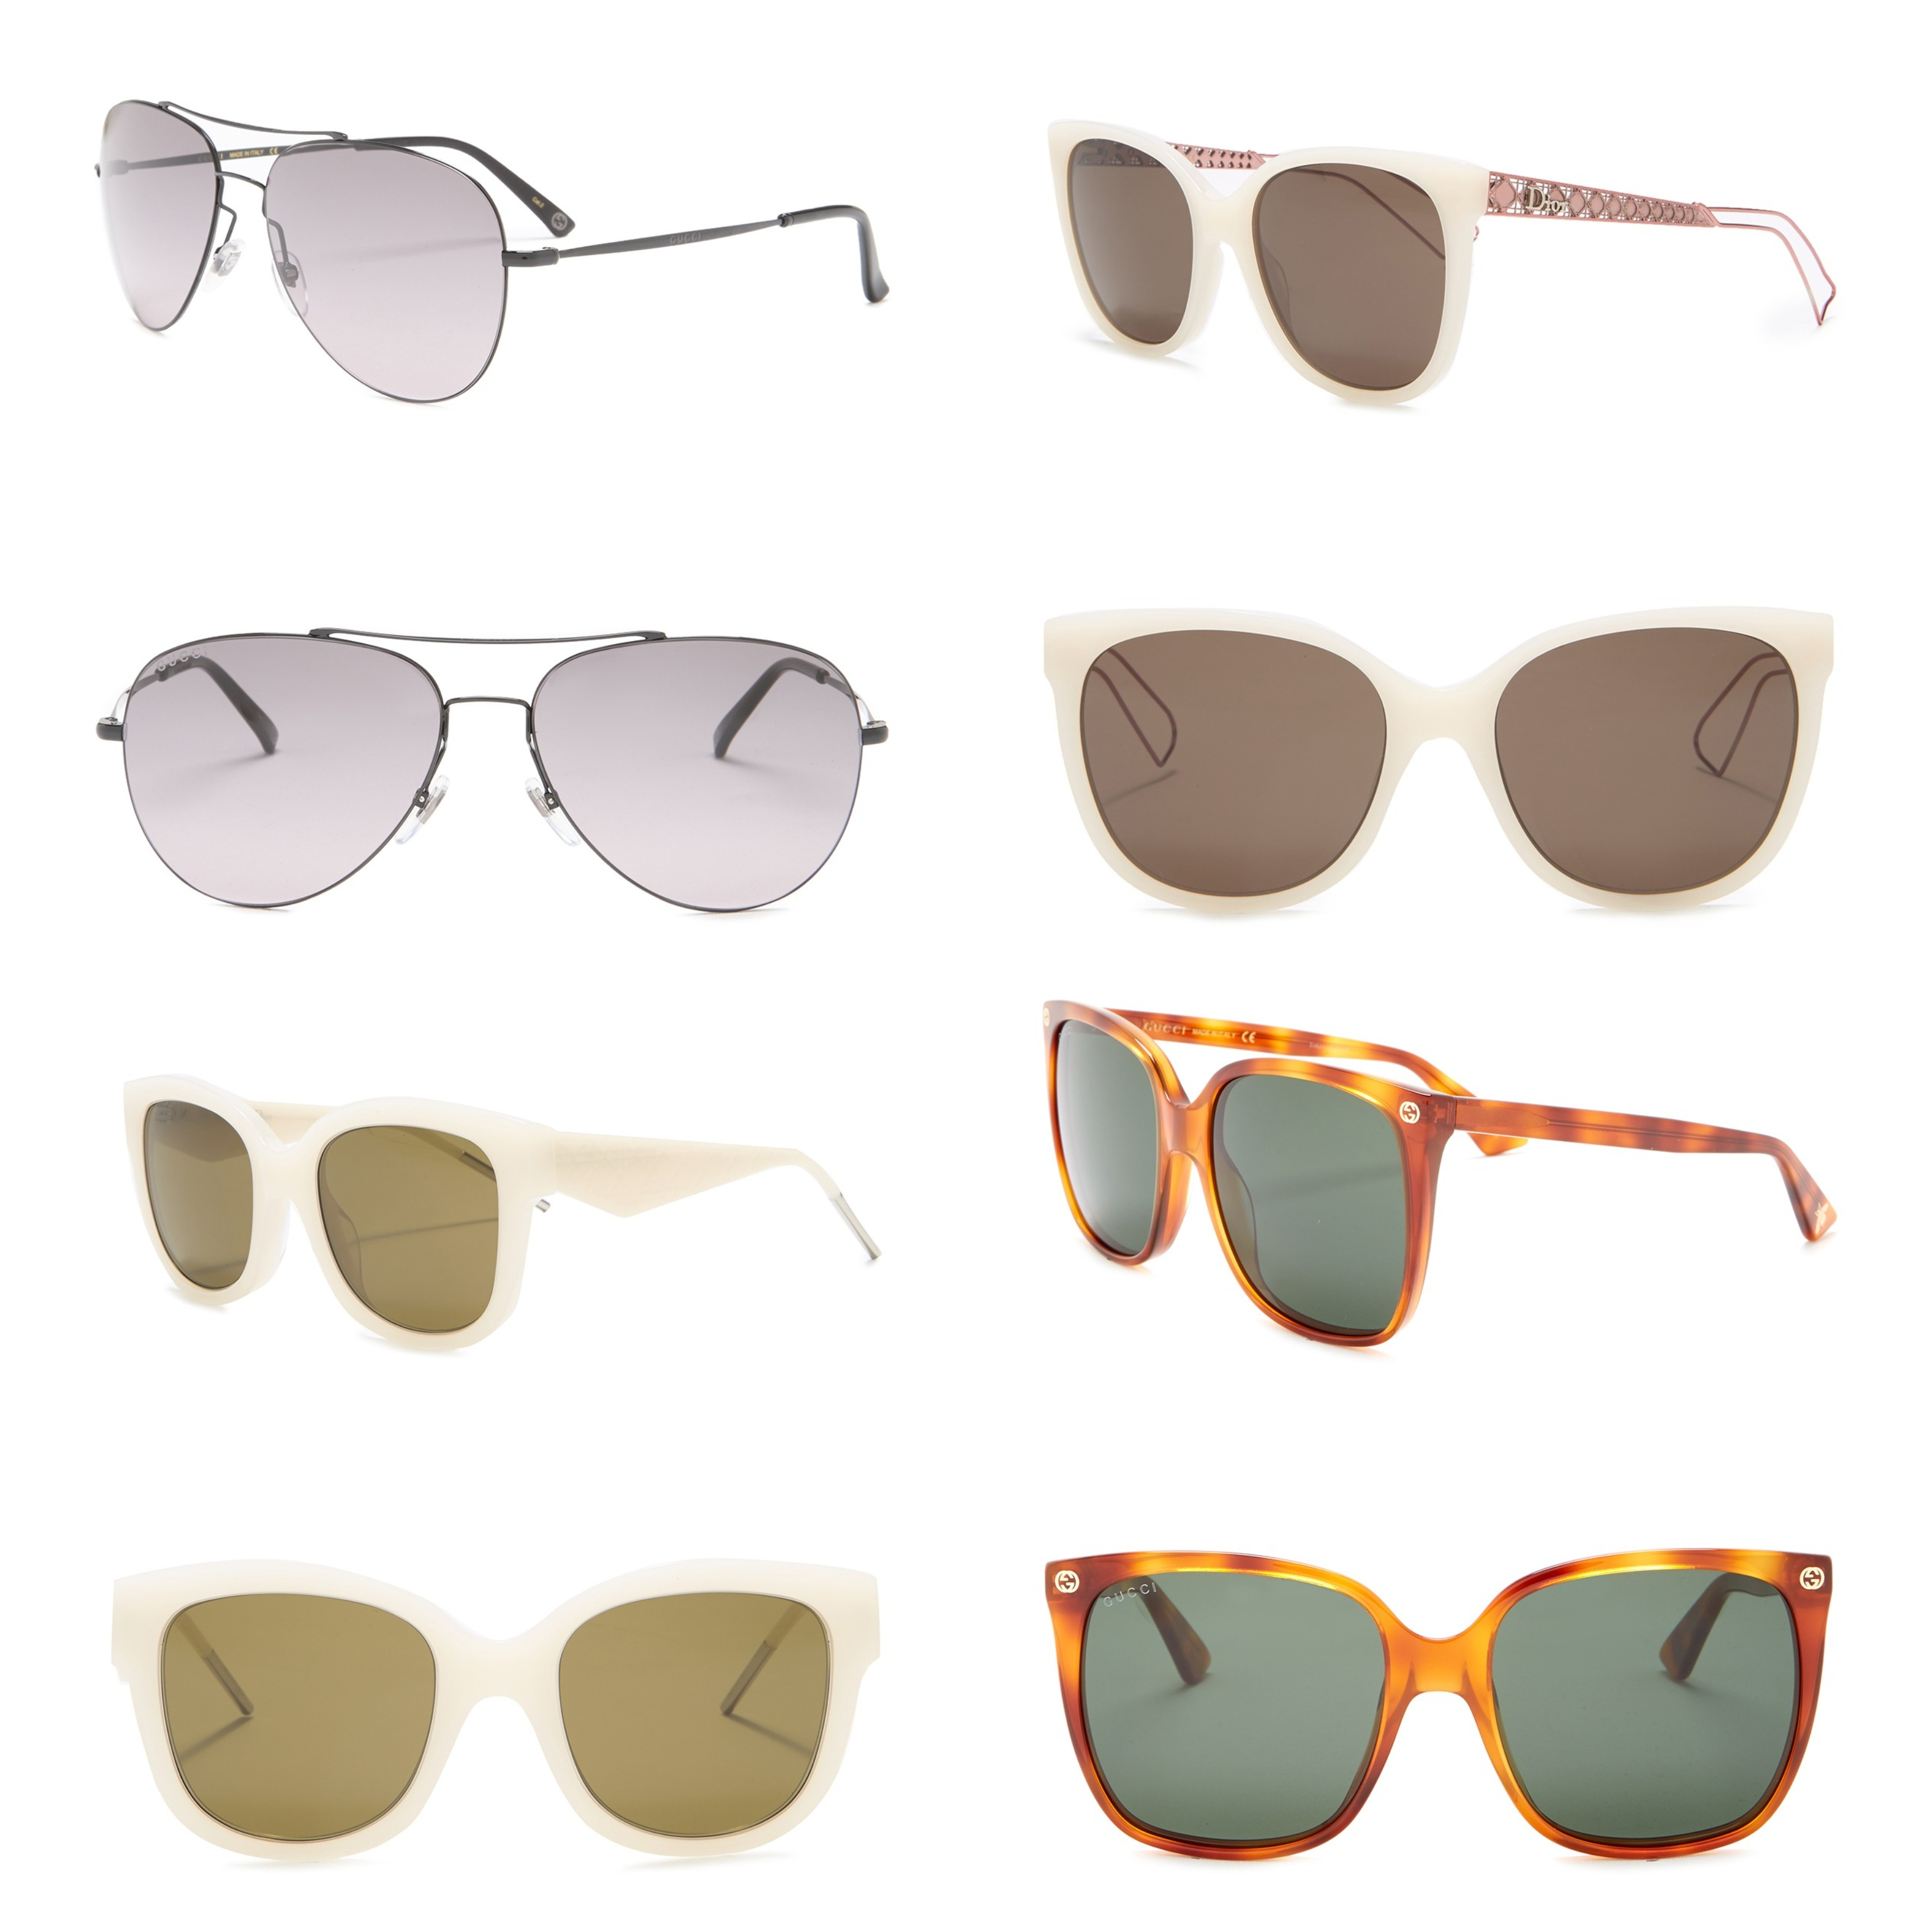 4cc742efeb52 Nordstrom Rack: 60% Off Dior, Gucci, and More Sunglasses! – Wear It ...